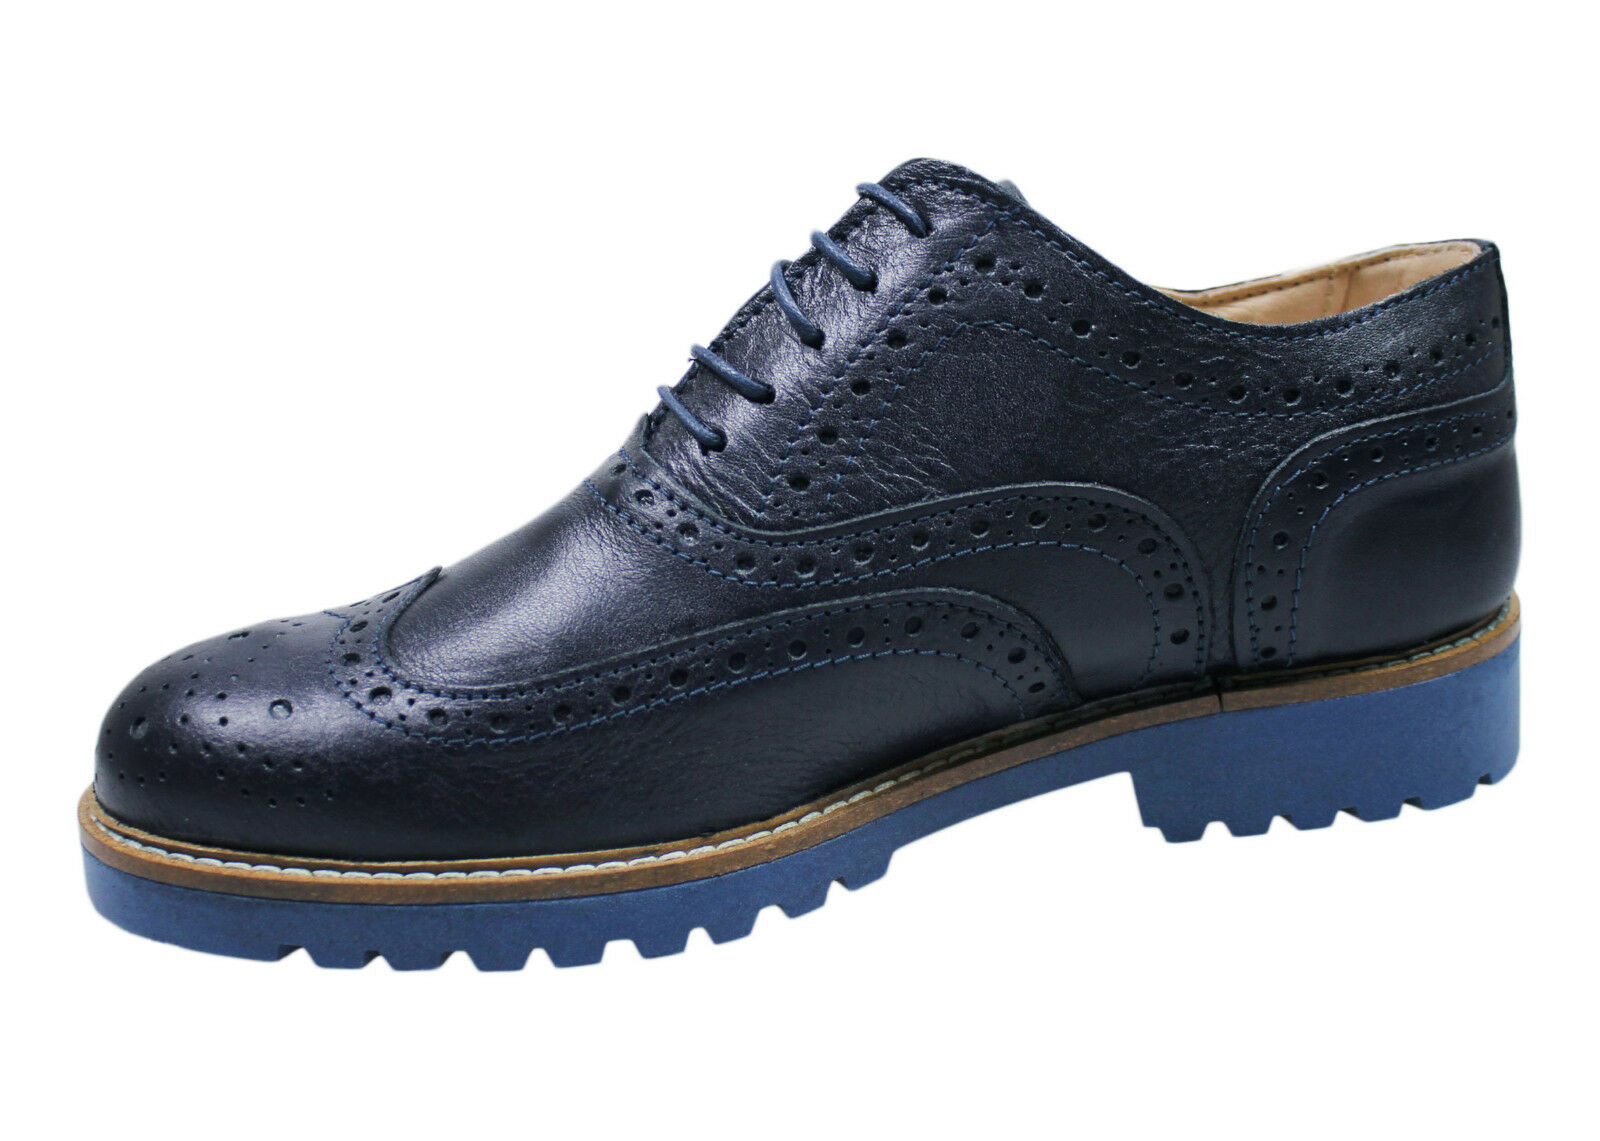 SHOES OXFORD MAN DIAMOND DARK blueE REAL LEATHER CASUAL ELEGANT da 39 a 45